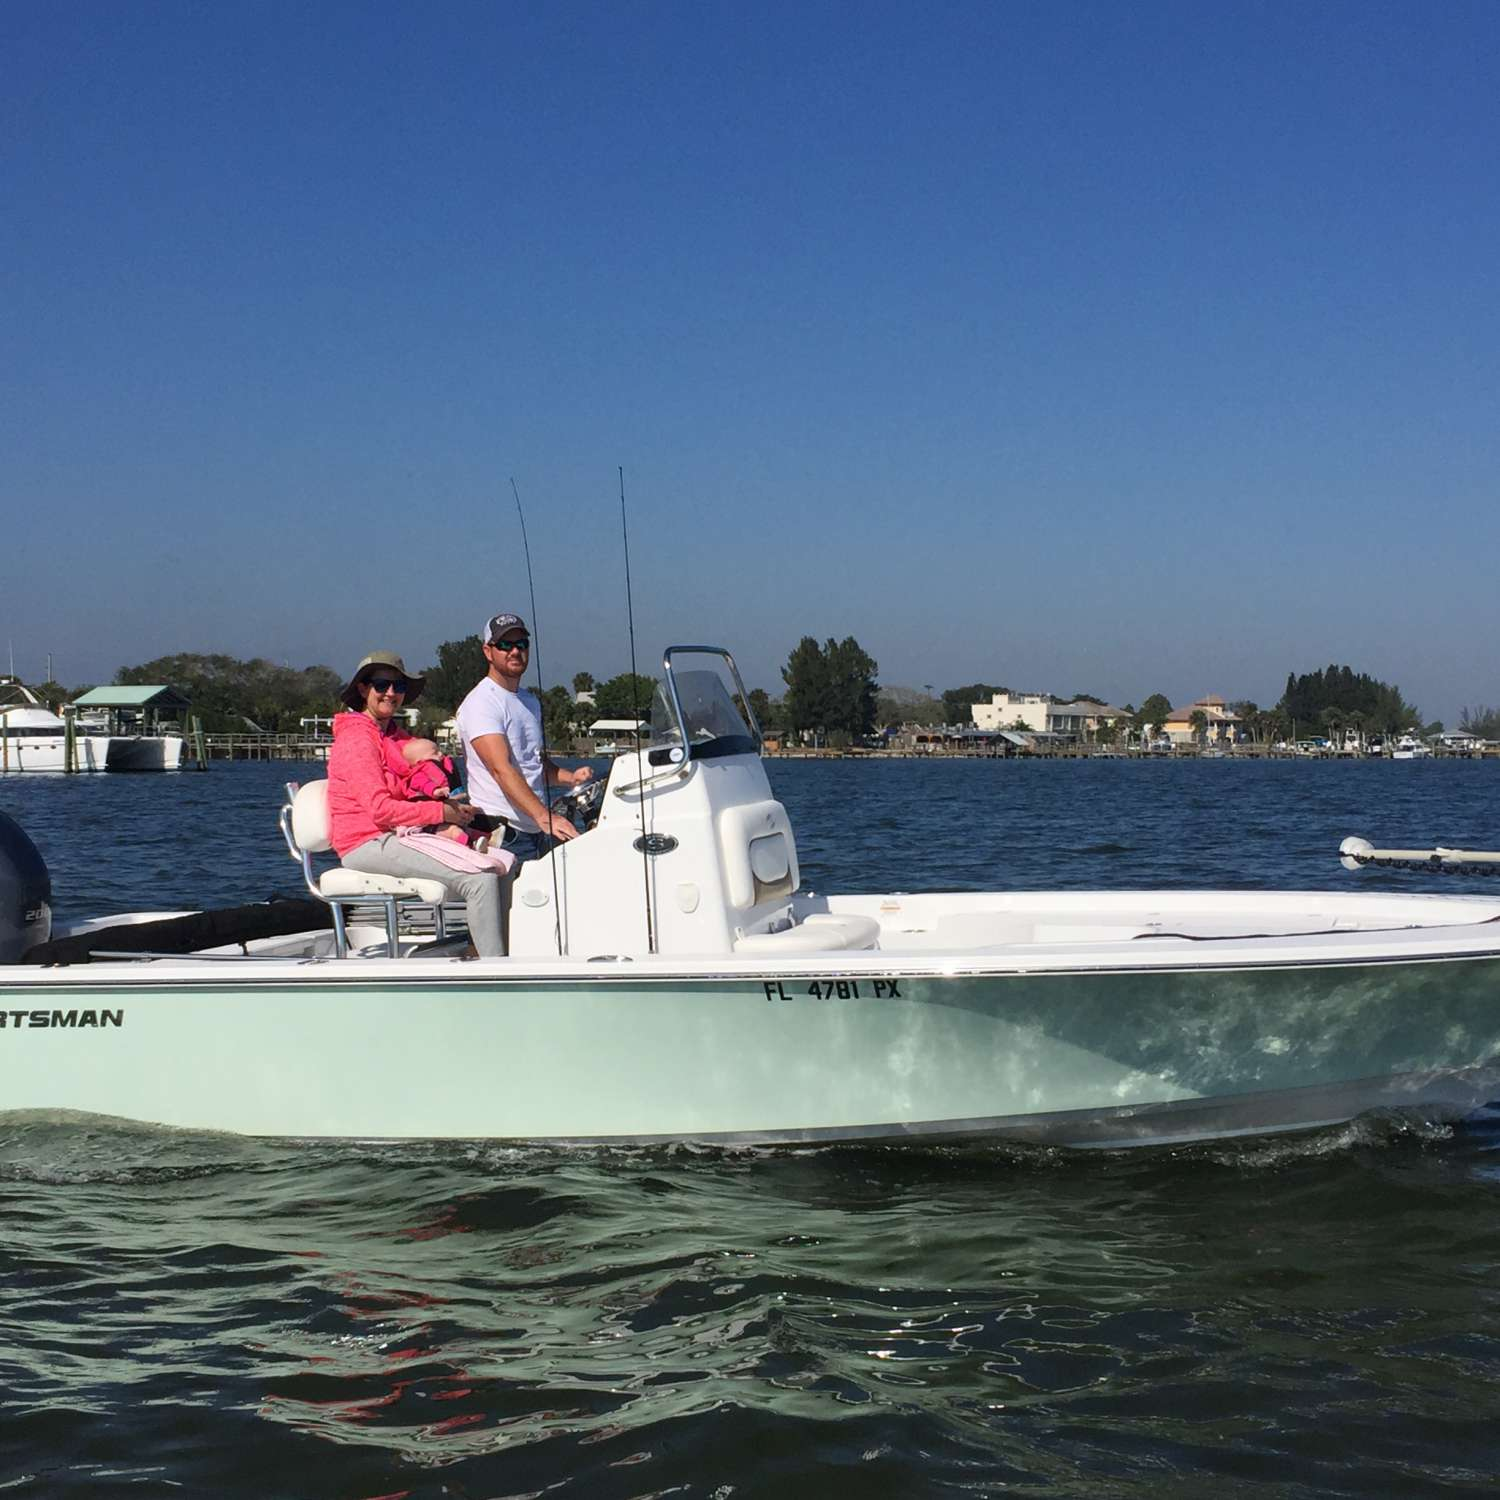 Title: Baby's First Boat Ride! - On board their Sportsman Masters 227 Bay Boat - Location: Saint Cloud, Florida. Participating in the Photo Contest #SportsmanApril2017